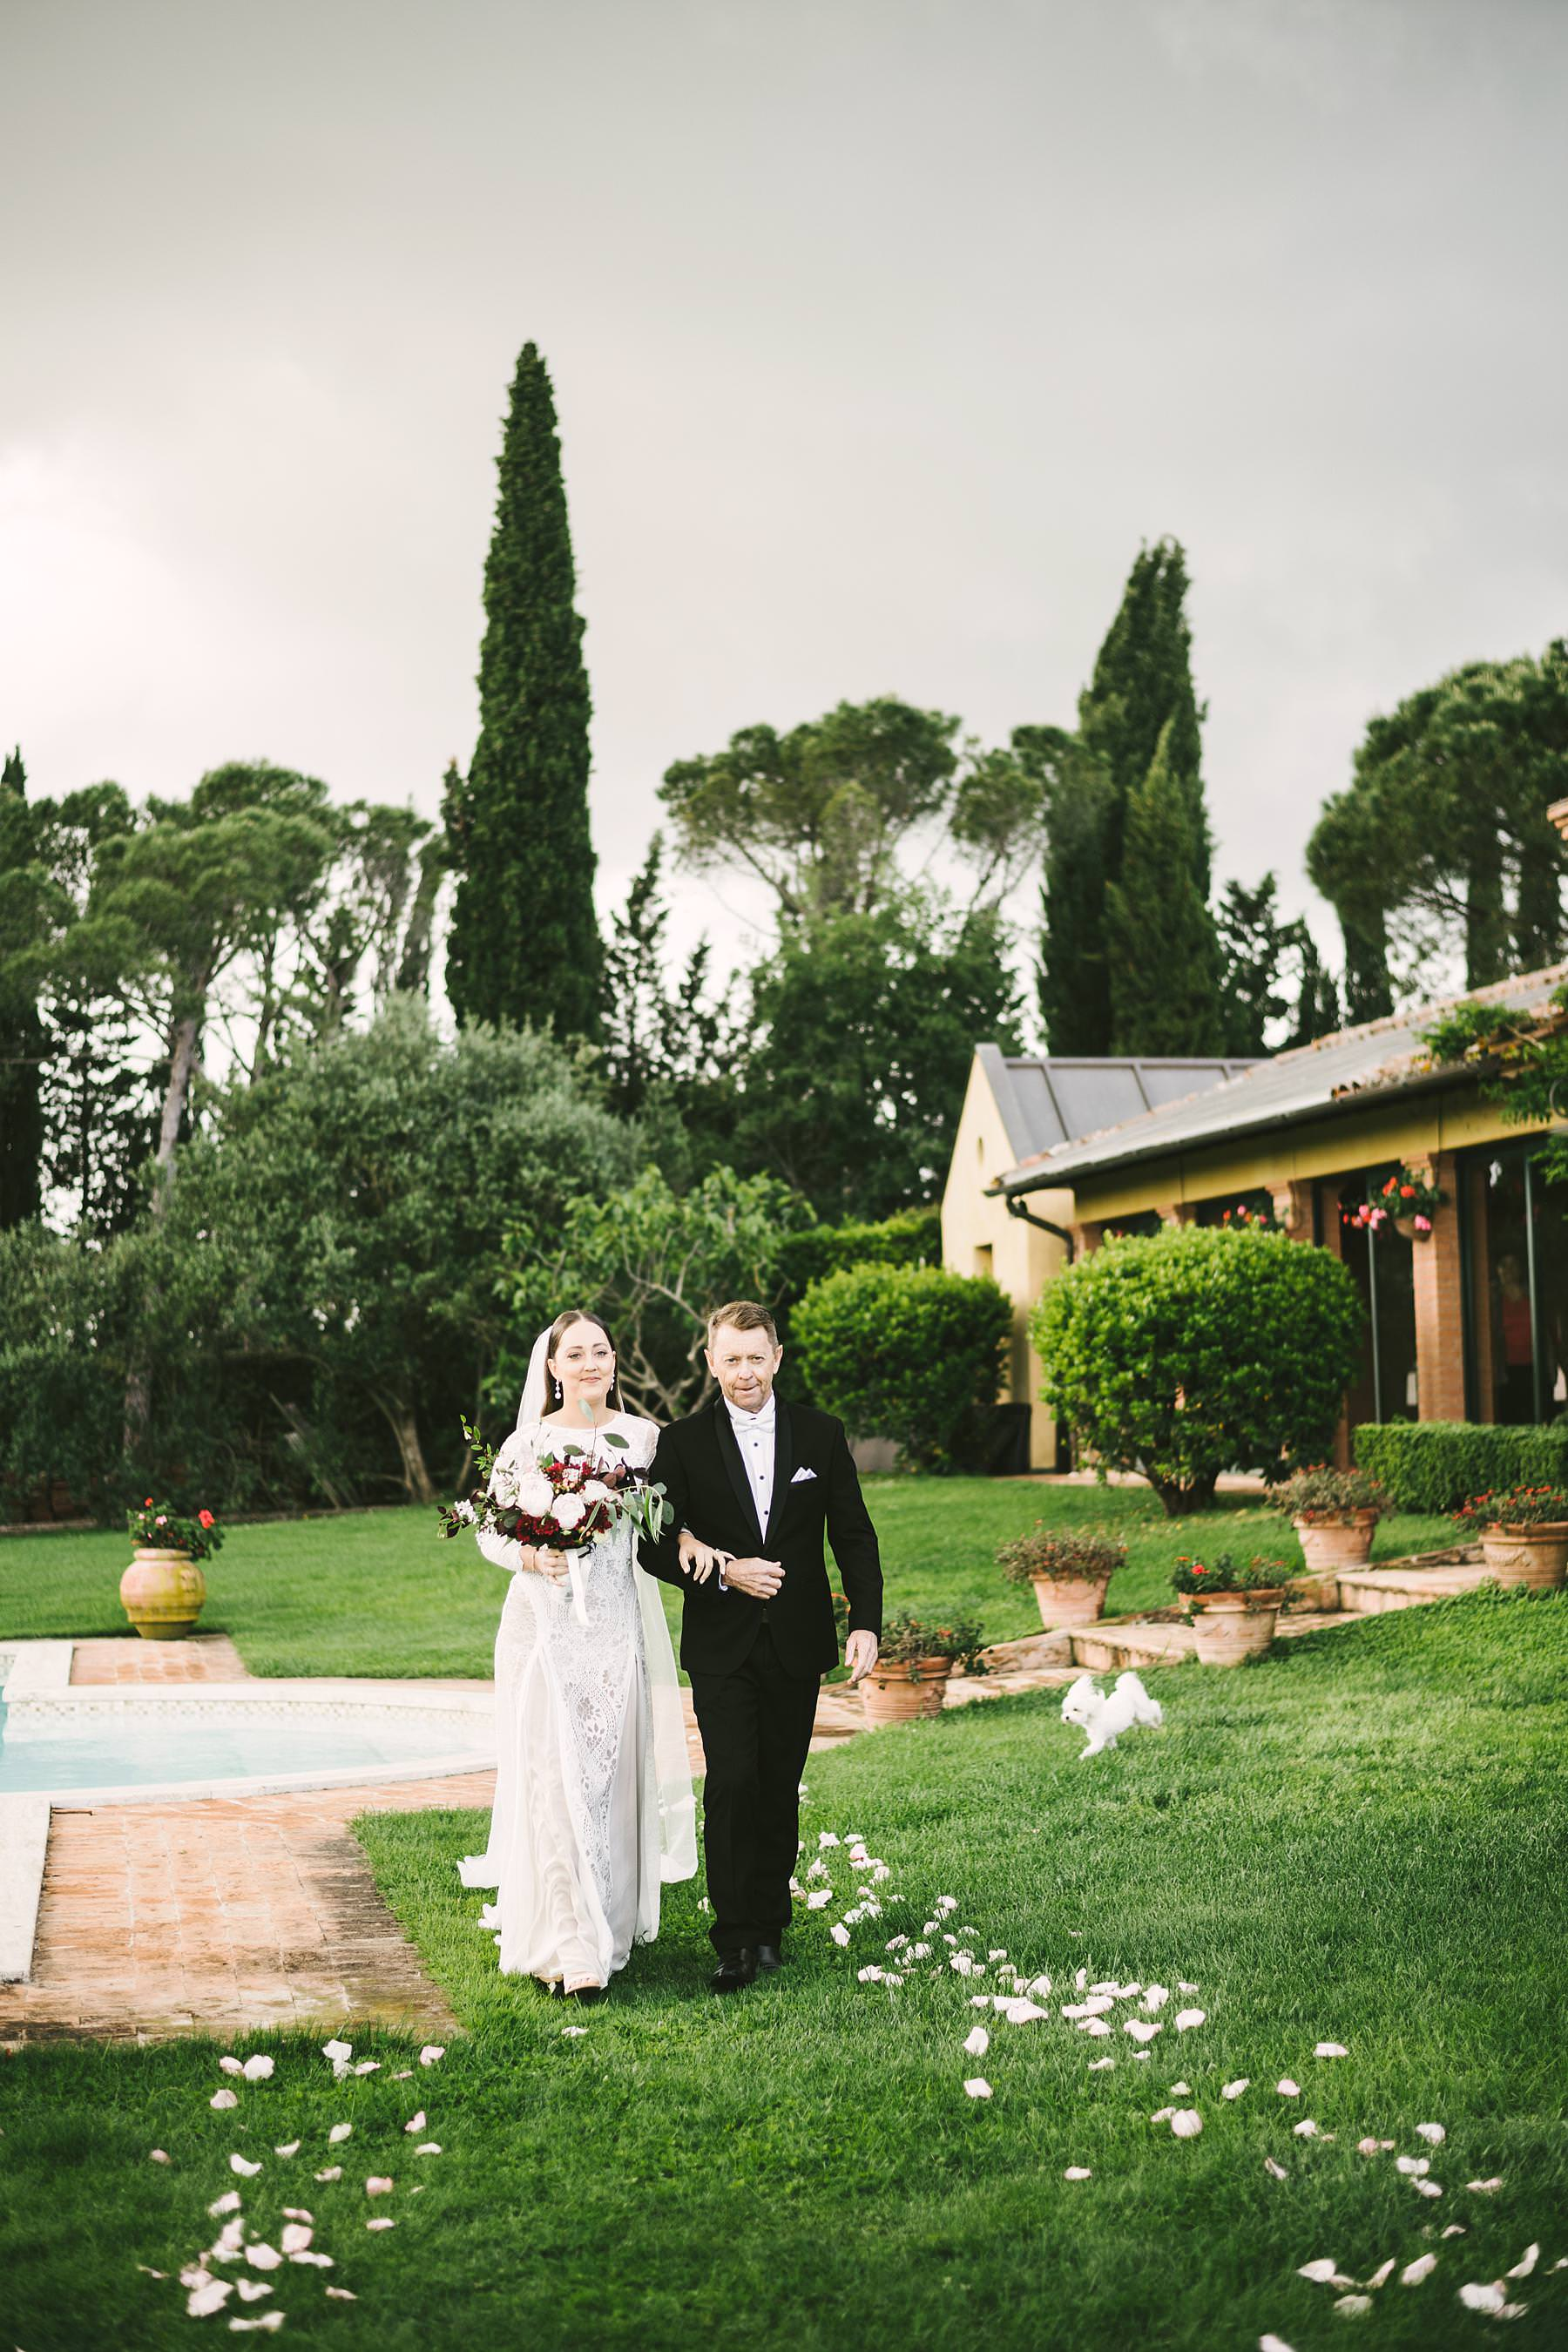 Bride Holly in Grace Loves Lace wedding dress walks down the aisle with her father in intimate destination wedding in Umbria at incredible historic venue Villa l'Antica Posta